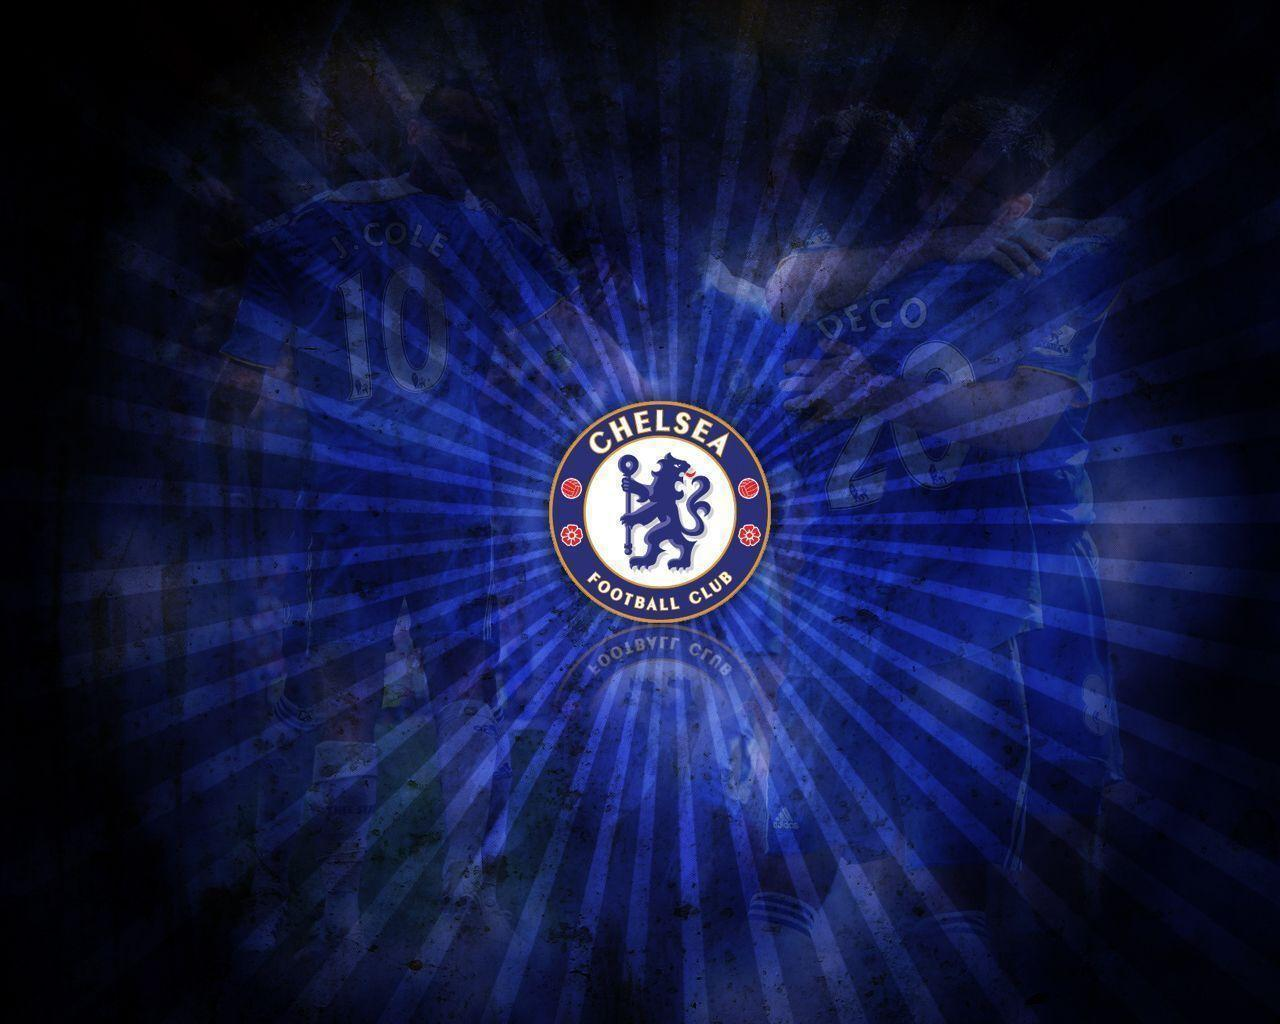 Chelsea Fc Hd Phone Wallpapers 177611 Image